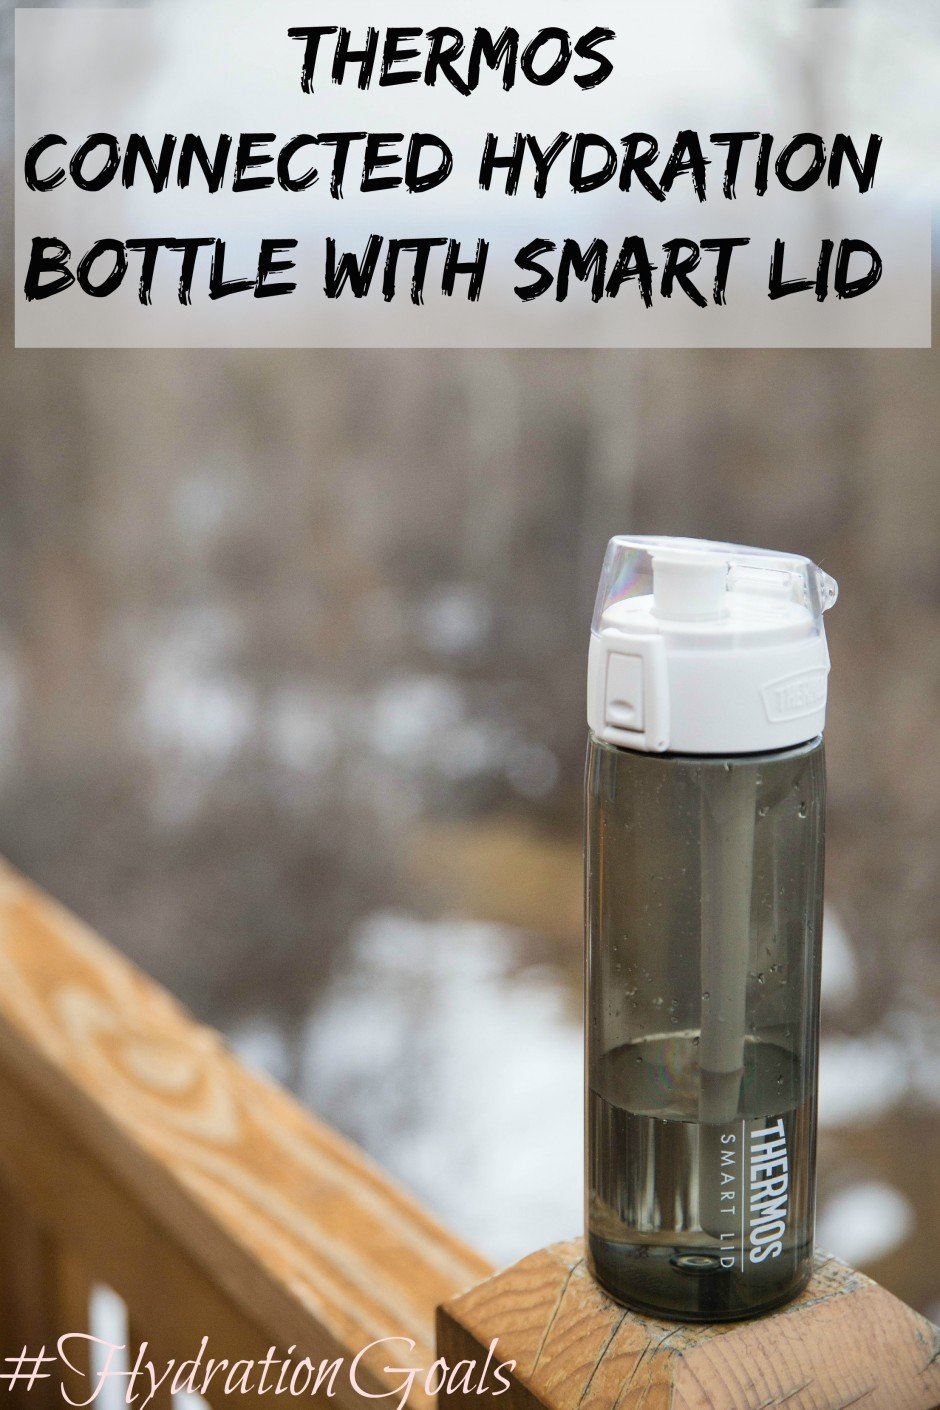 Thermos Connected Hydration Bottle